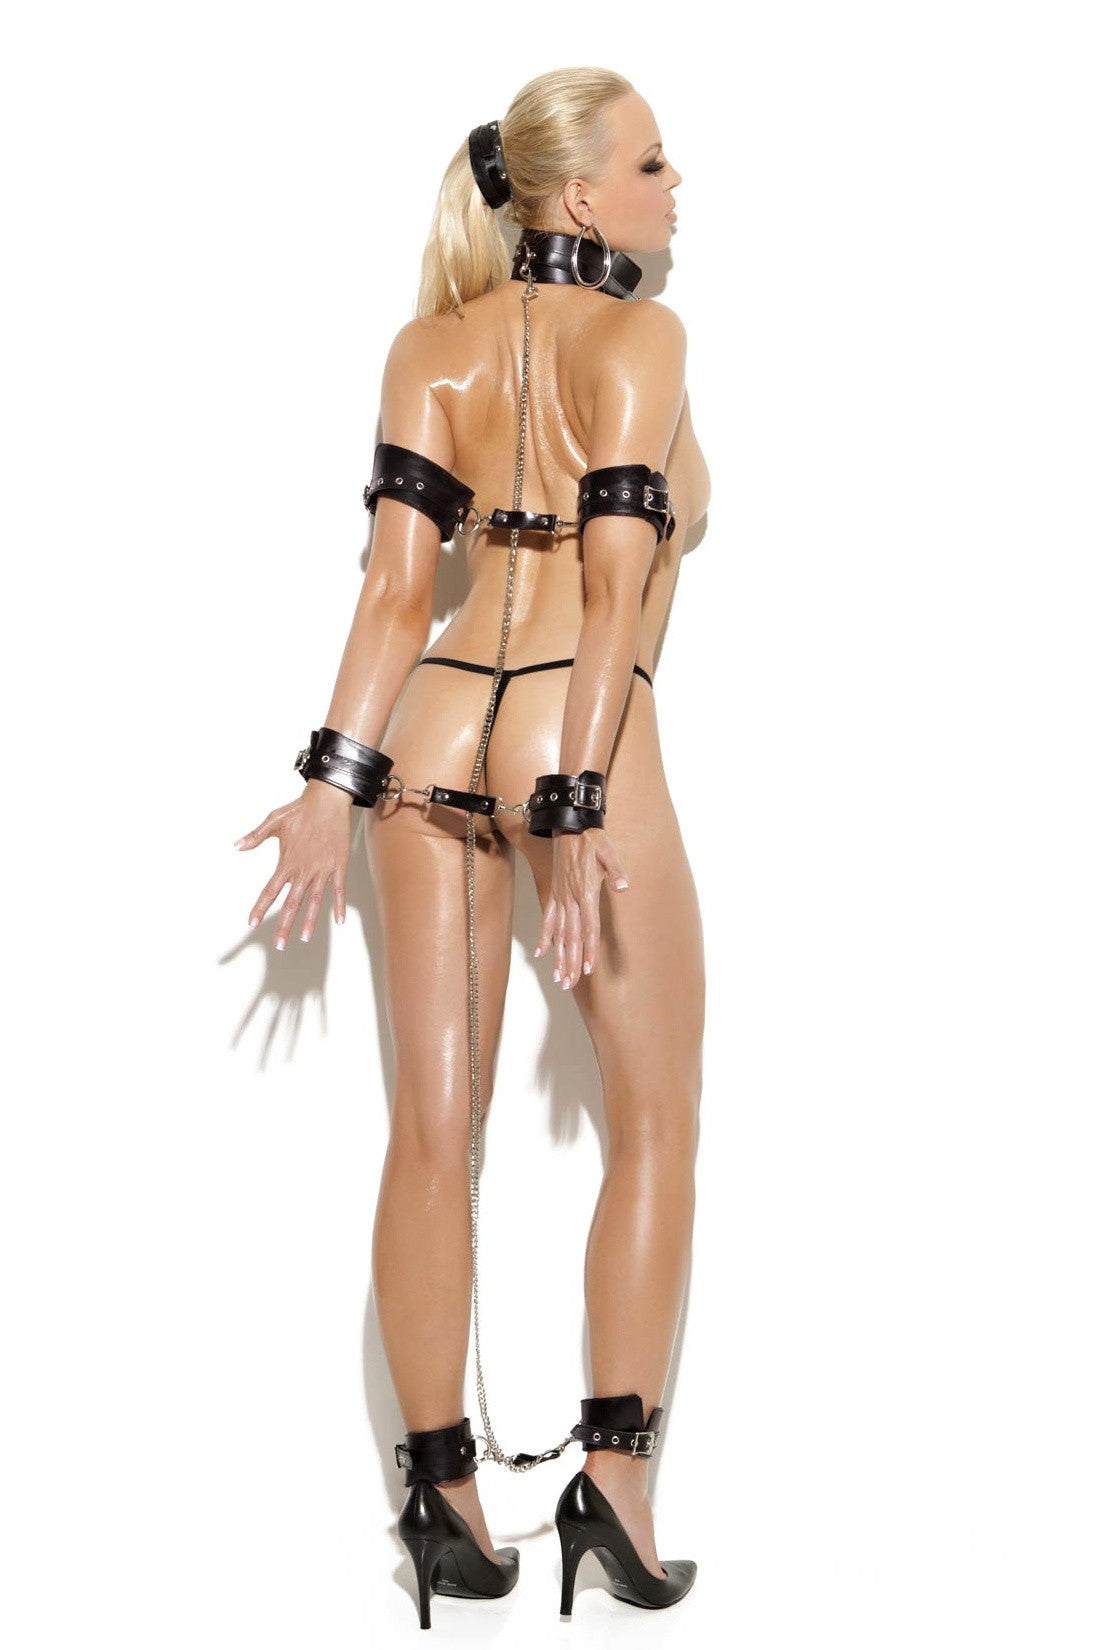 L9420 Detachable leather and chain collar, arm, wrist, ankle restraints - Sexylingerieland